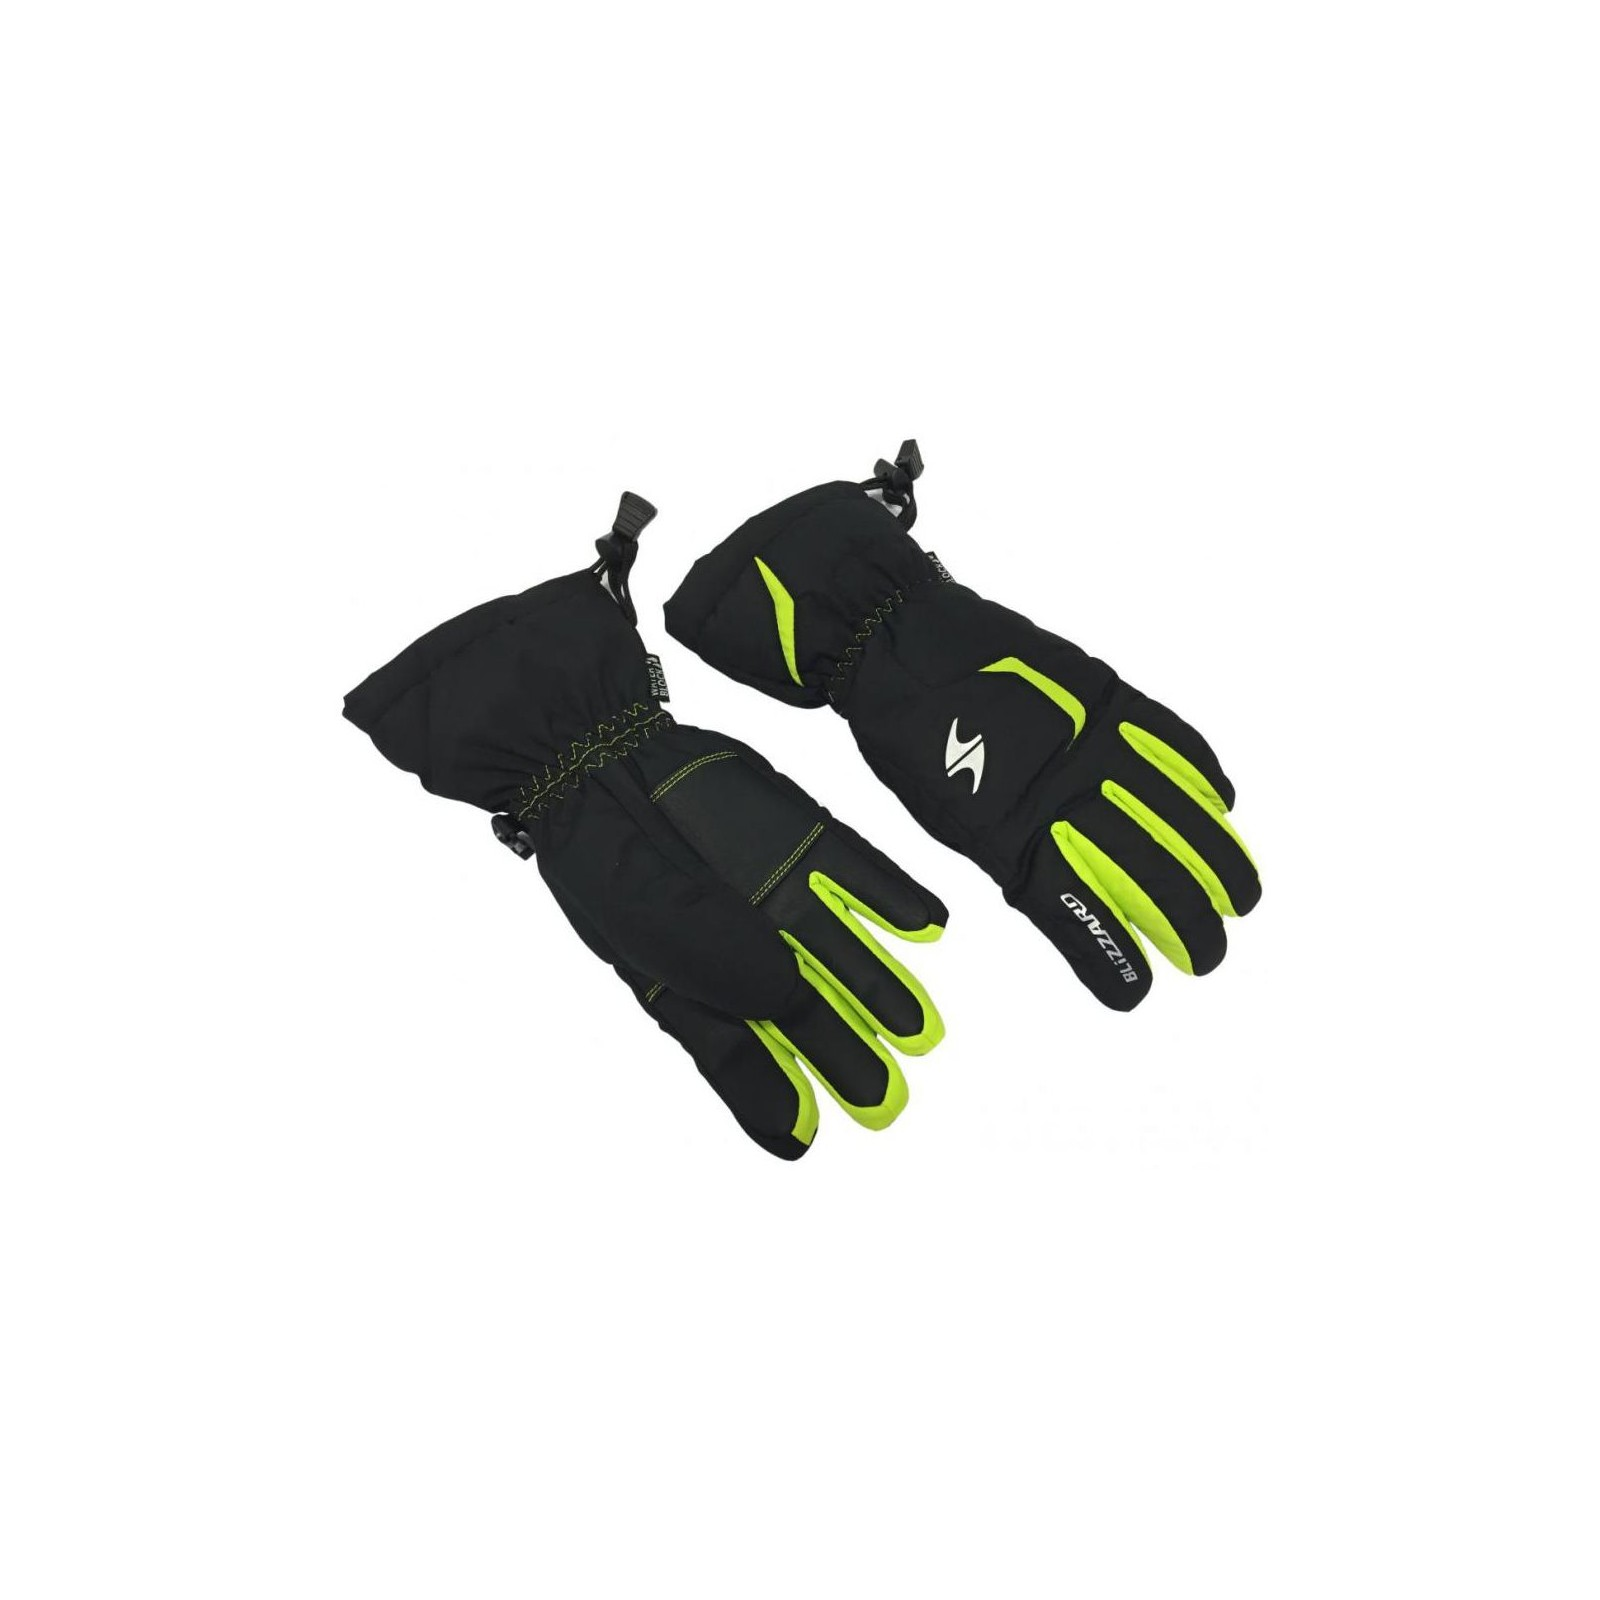 Blizzard rider junior ski gloves black green - juniorske-lyziarske-rukavice- blizzard a2e410791a8